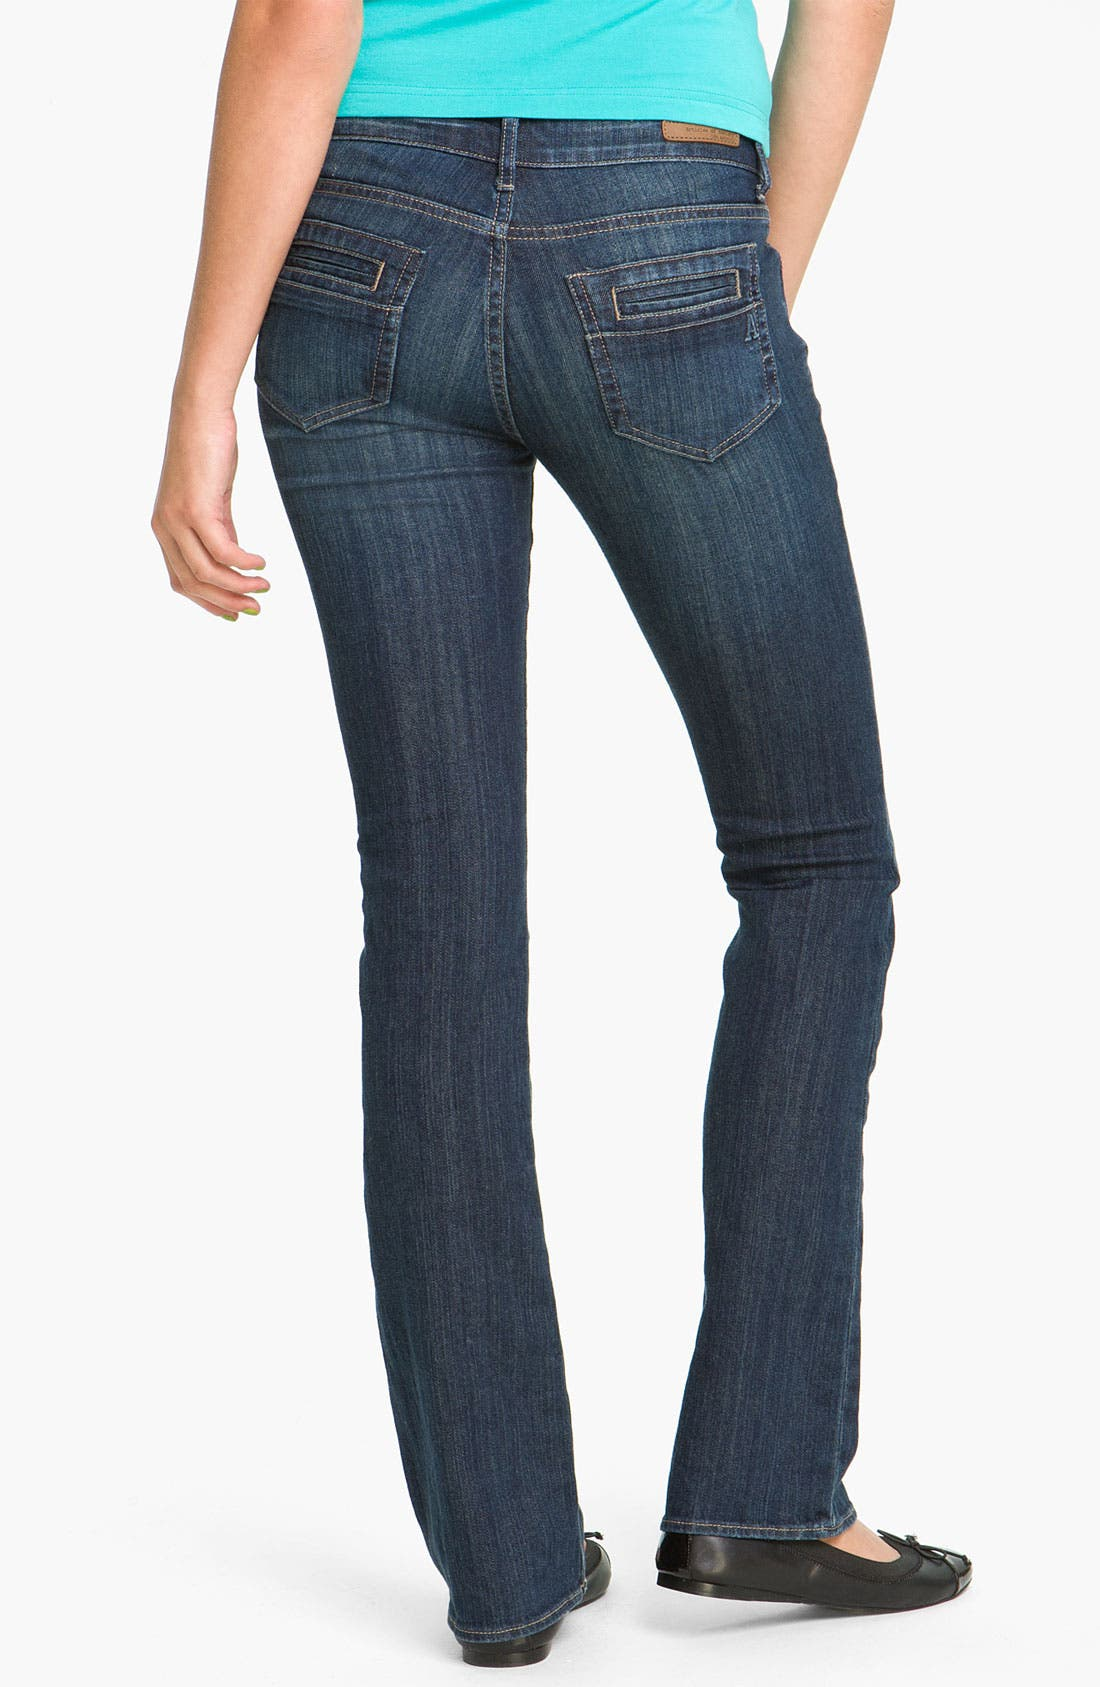 Main Image - Articles of Society 'Kendra' Bootcut Jeans (Topaz) (Juniors)